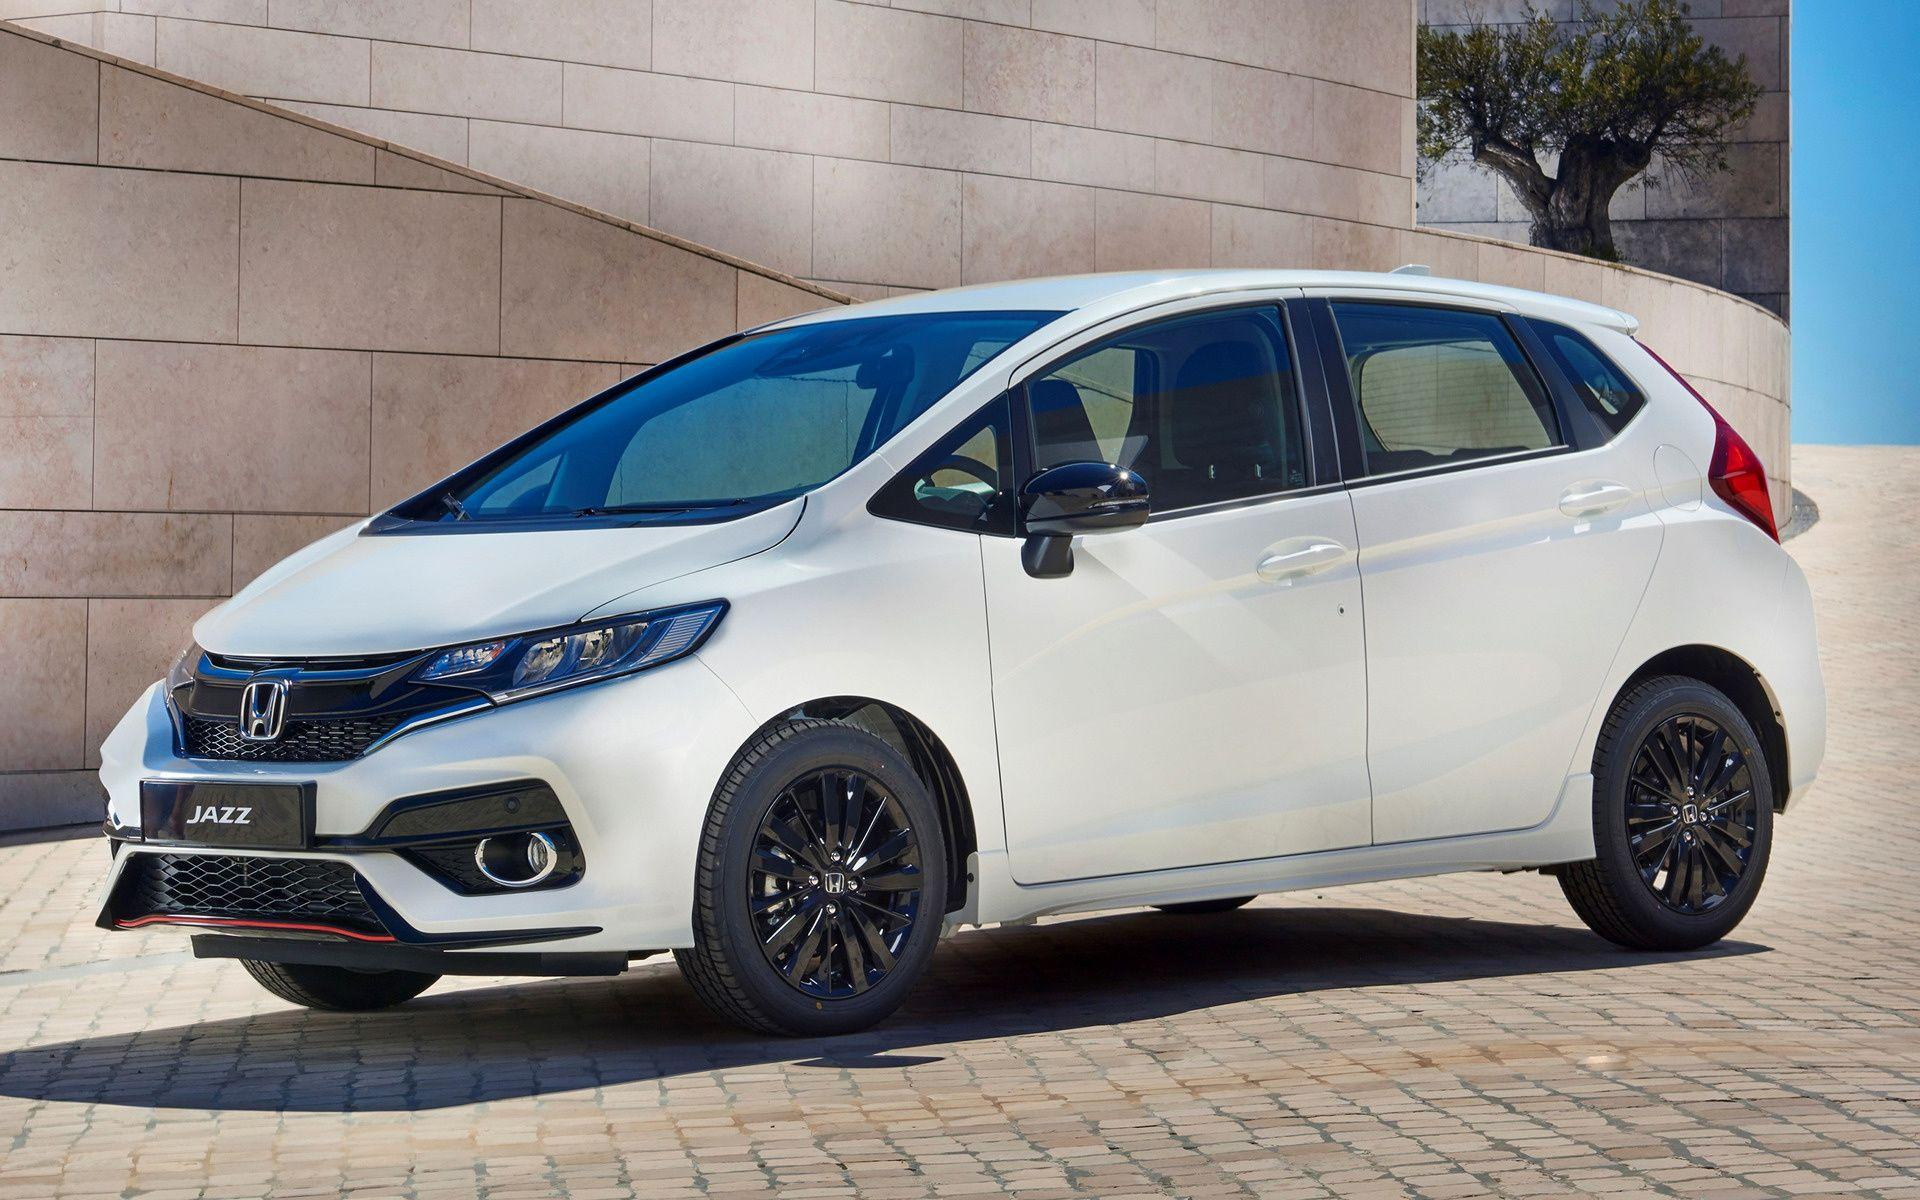 Honda Jazz Dynamic (2017) Wallpapers and HD Images - Car Pixel